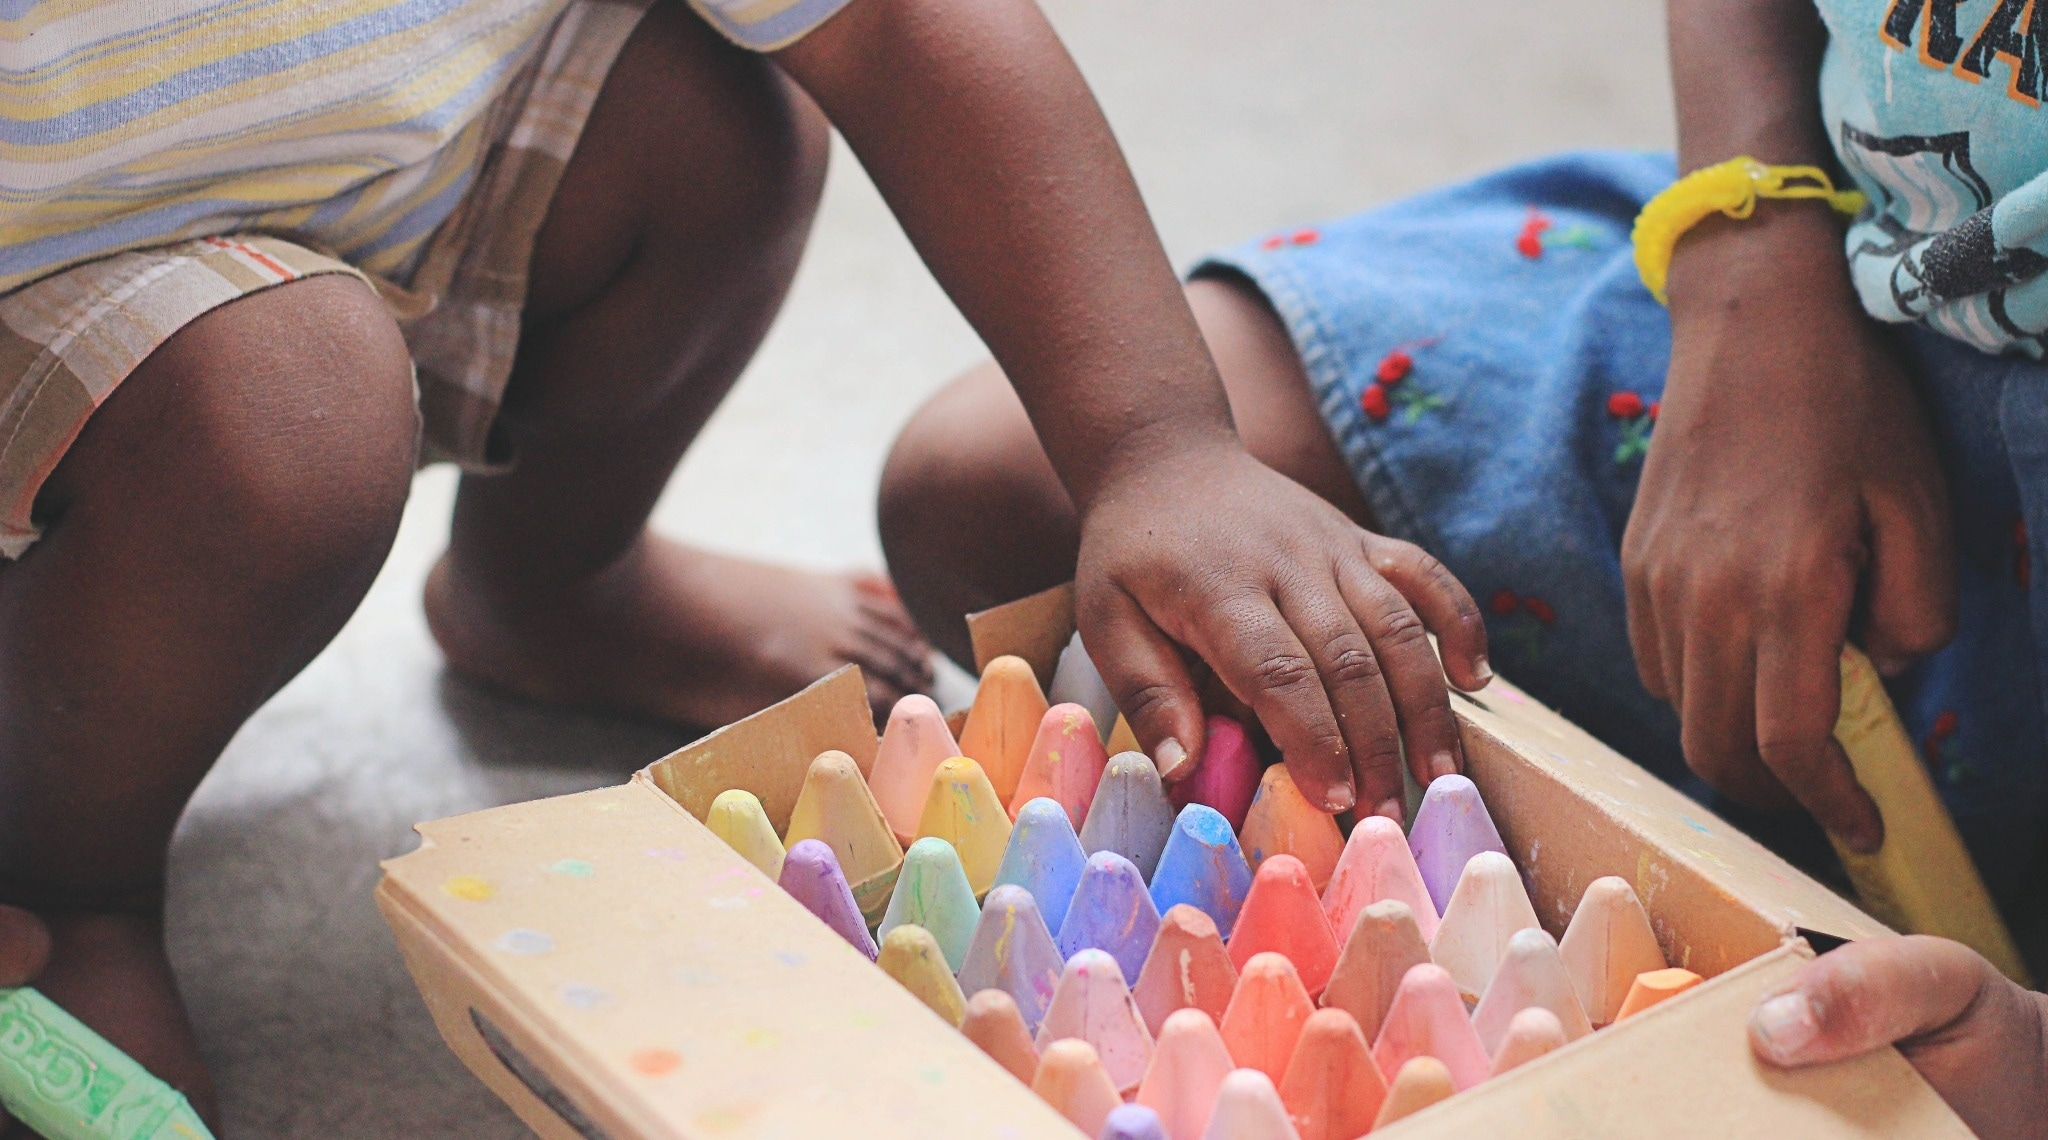 The Complete List of Free and Low-Cost Preschool Education Resources for Low-Income Families